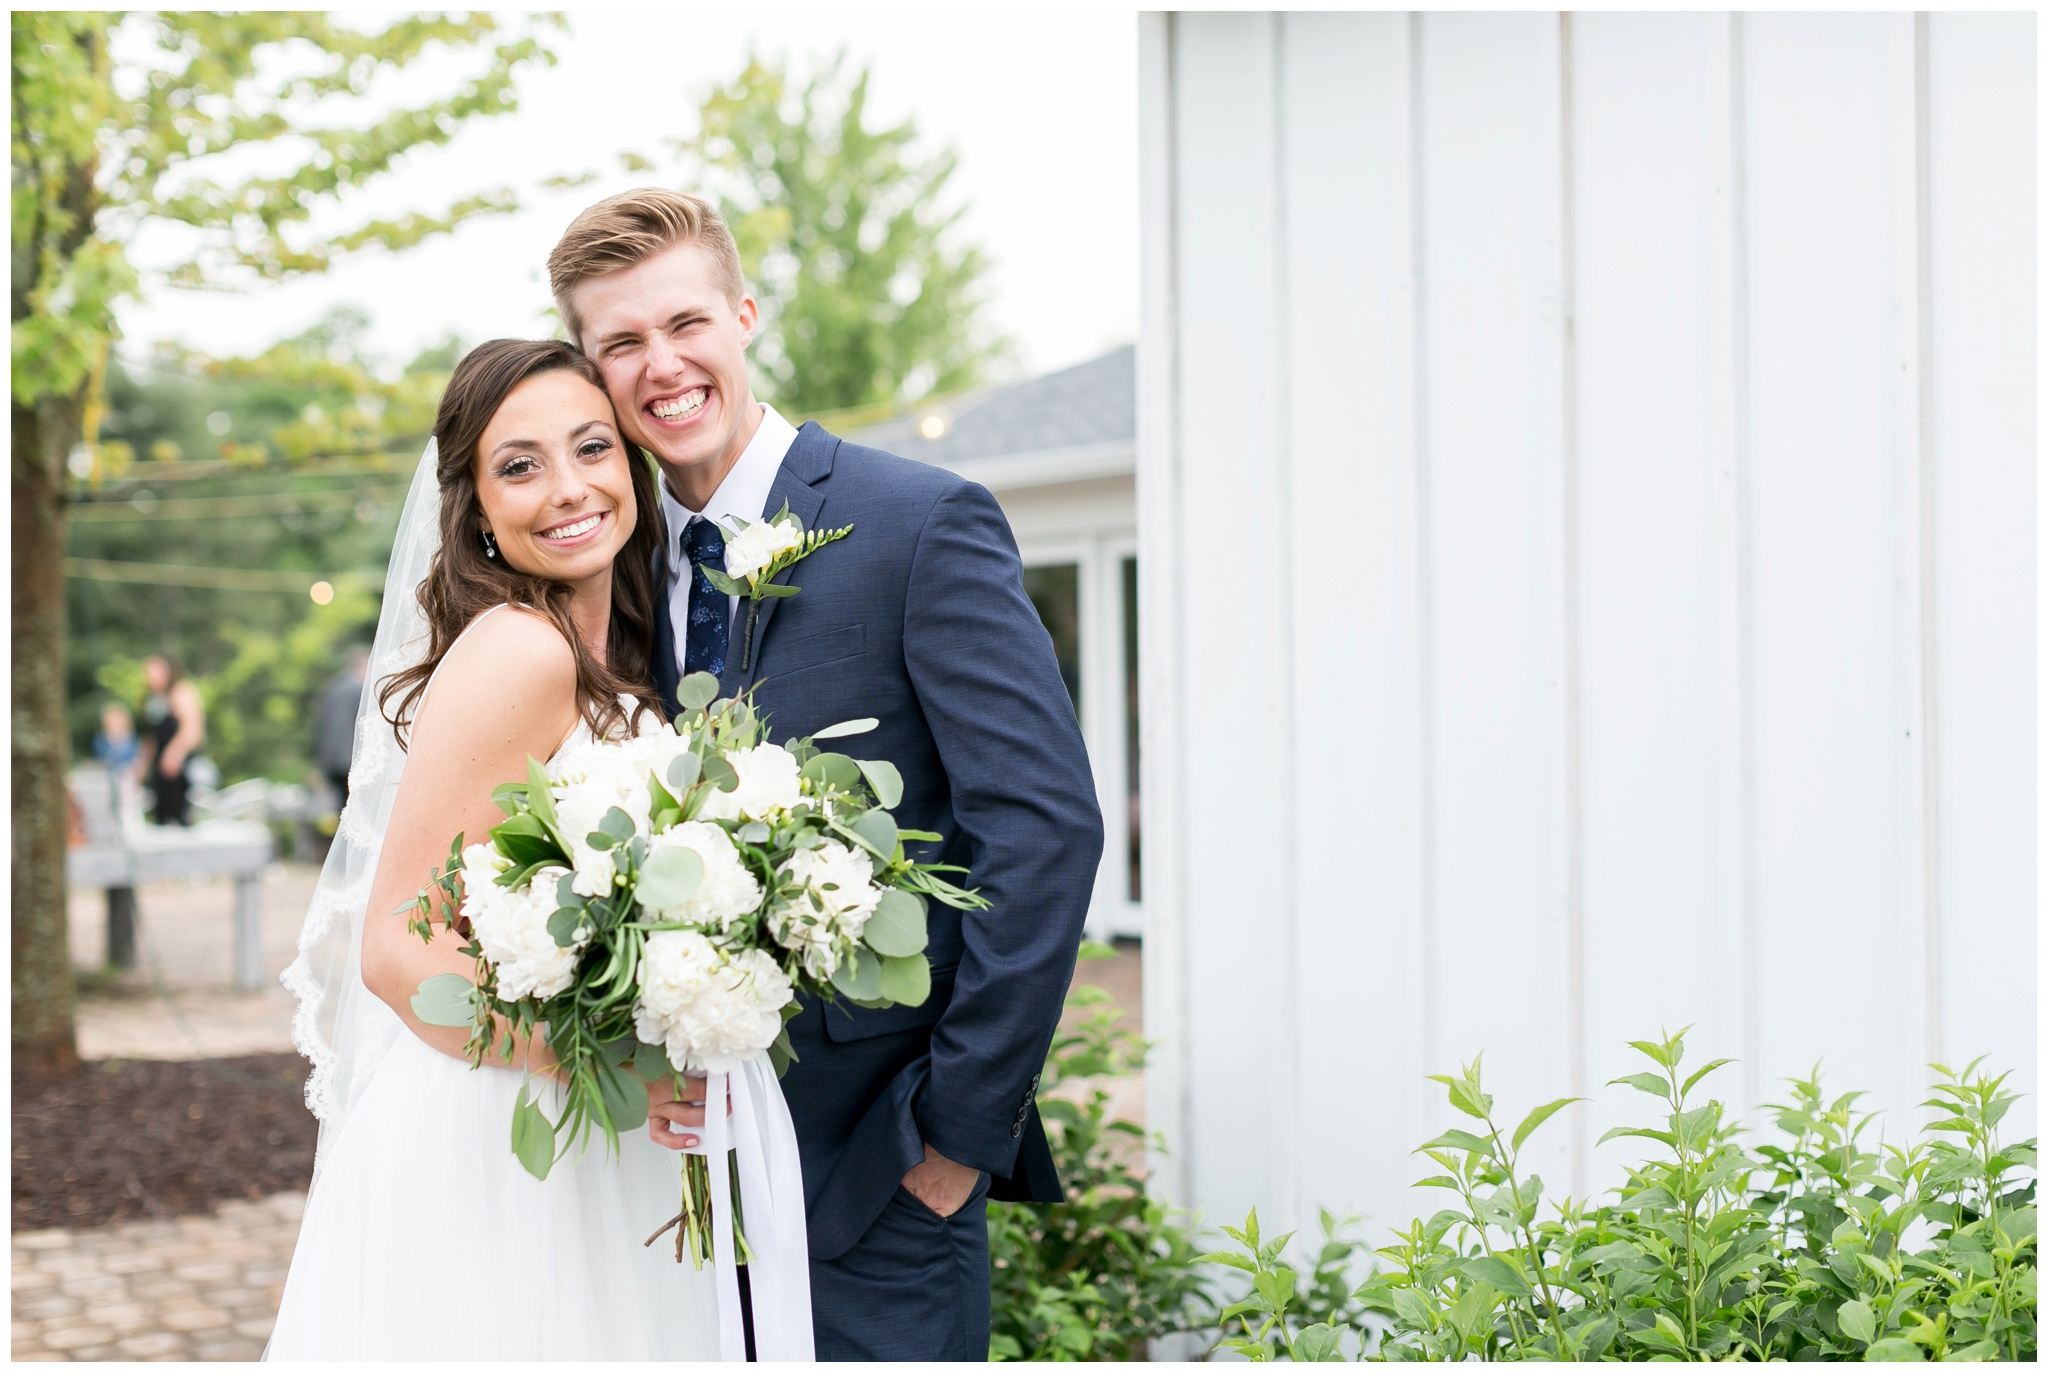 boxed_and_burlap_wedding_caynay_photo_delavan_wisconsin_photographer_3747.jpg